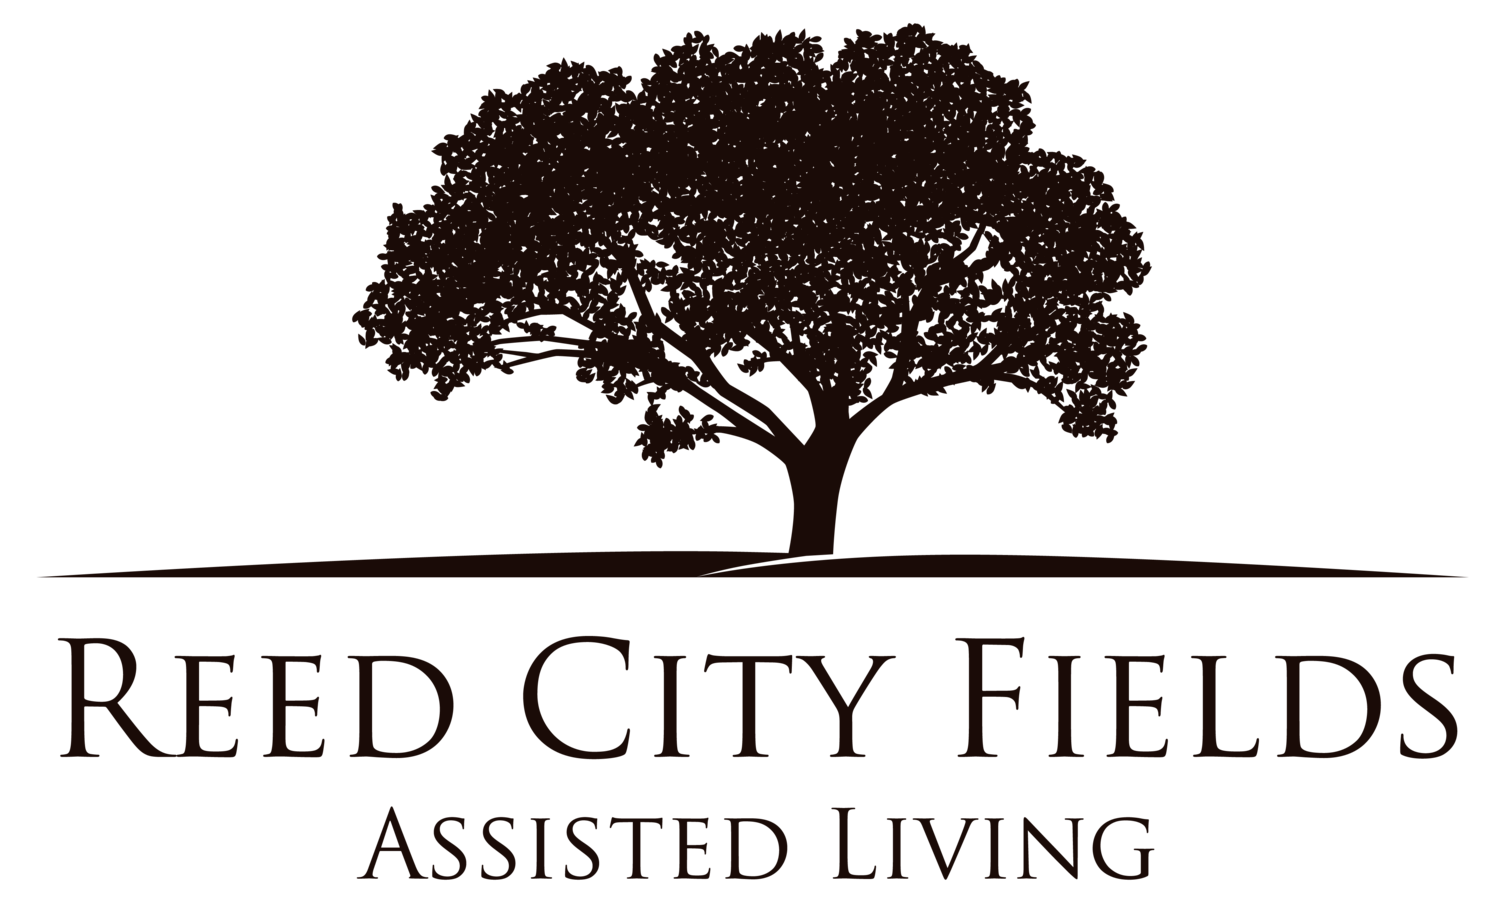 Reed City Fields Assisted Living